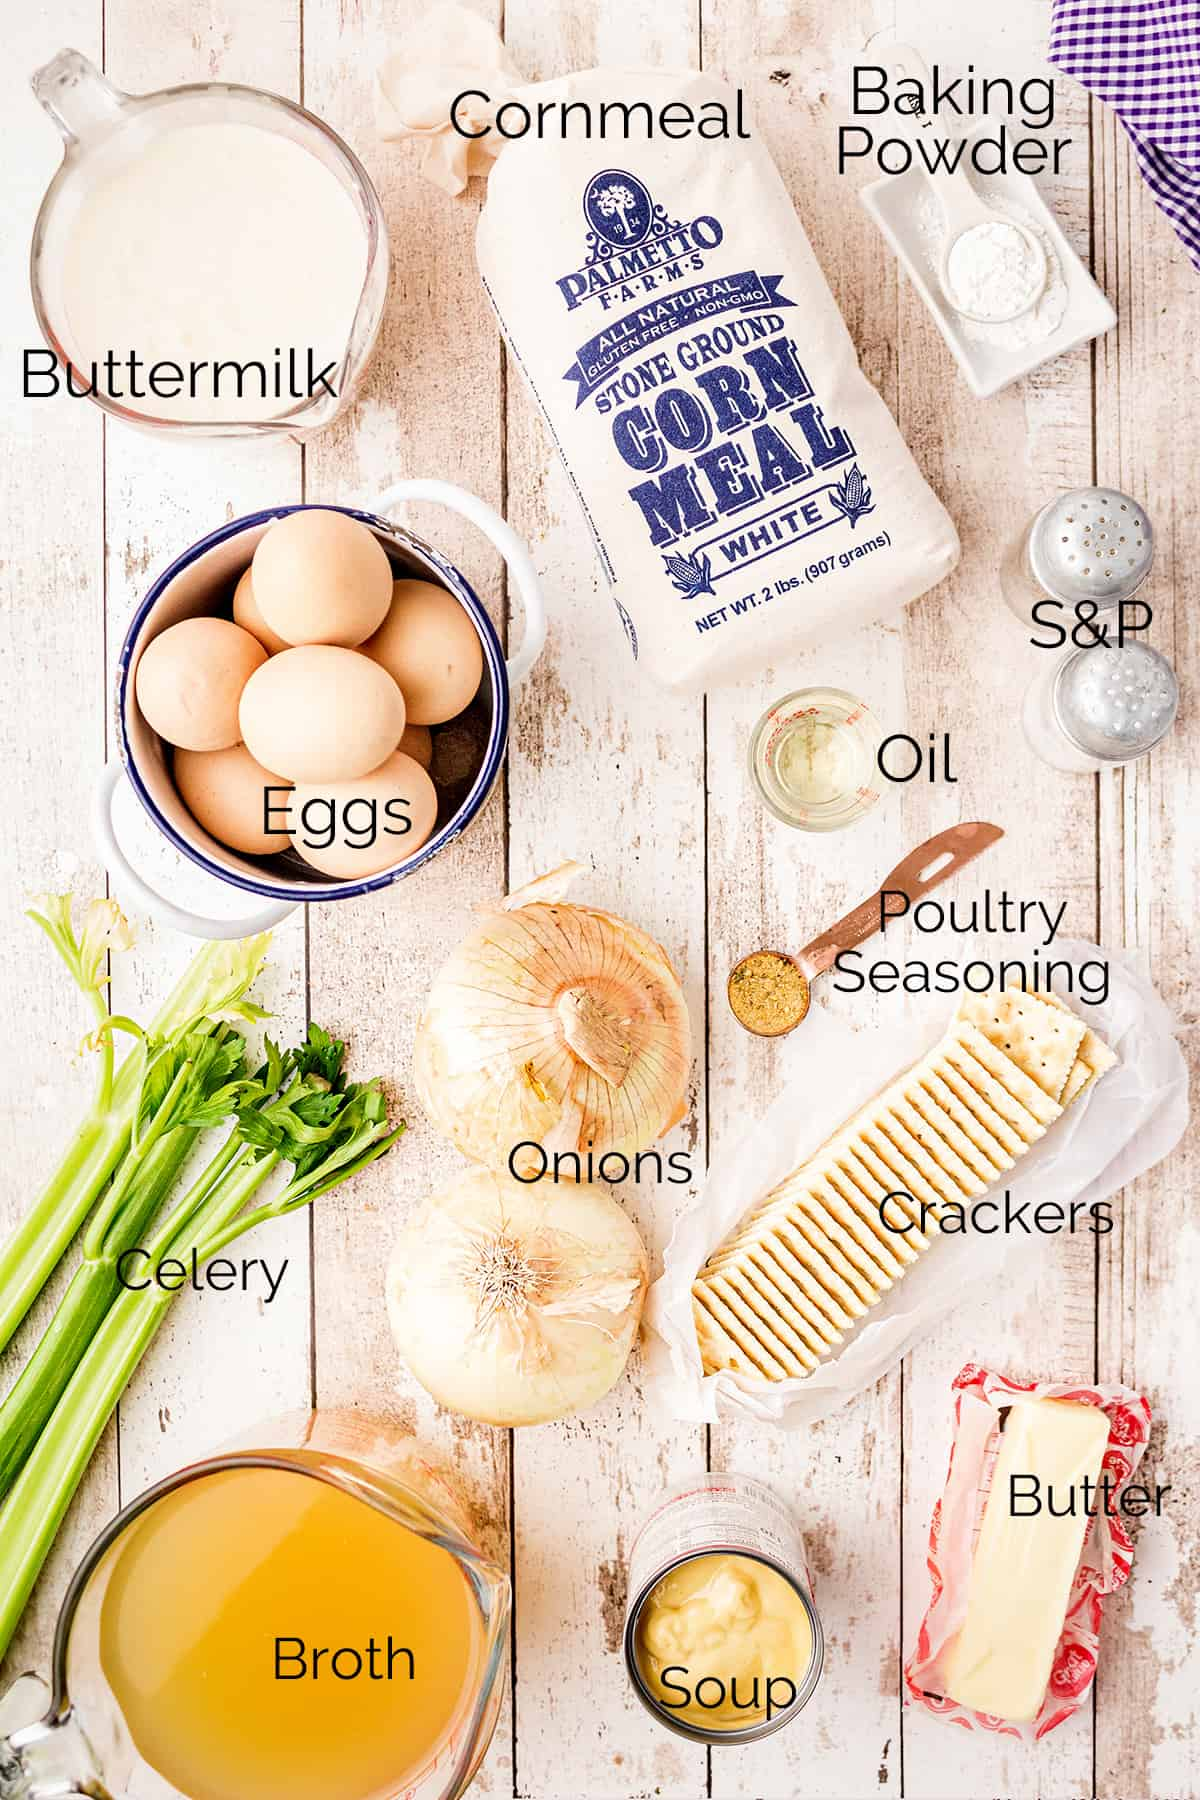 Ingredients needed to make southern cornbread dressing